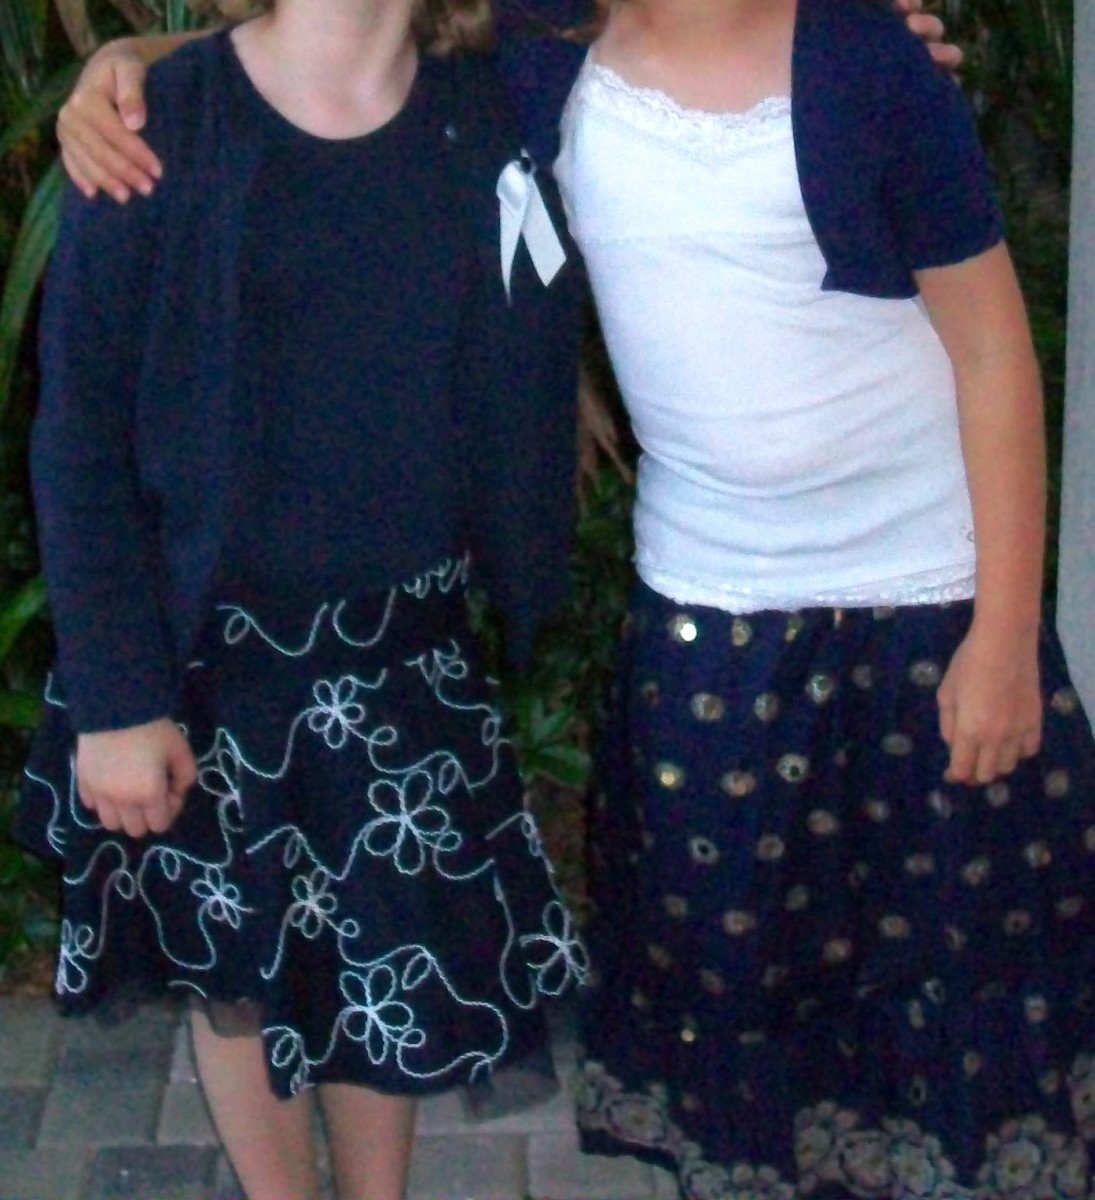 Two girls dressed for synagogue